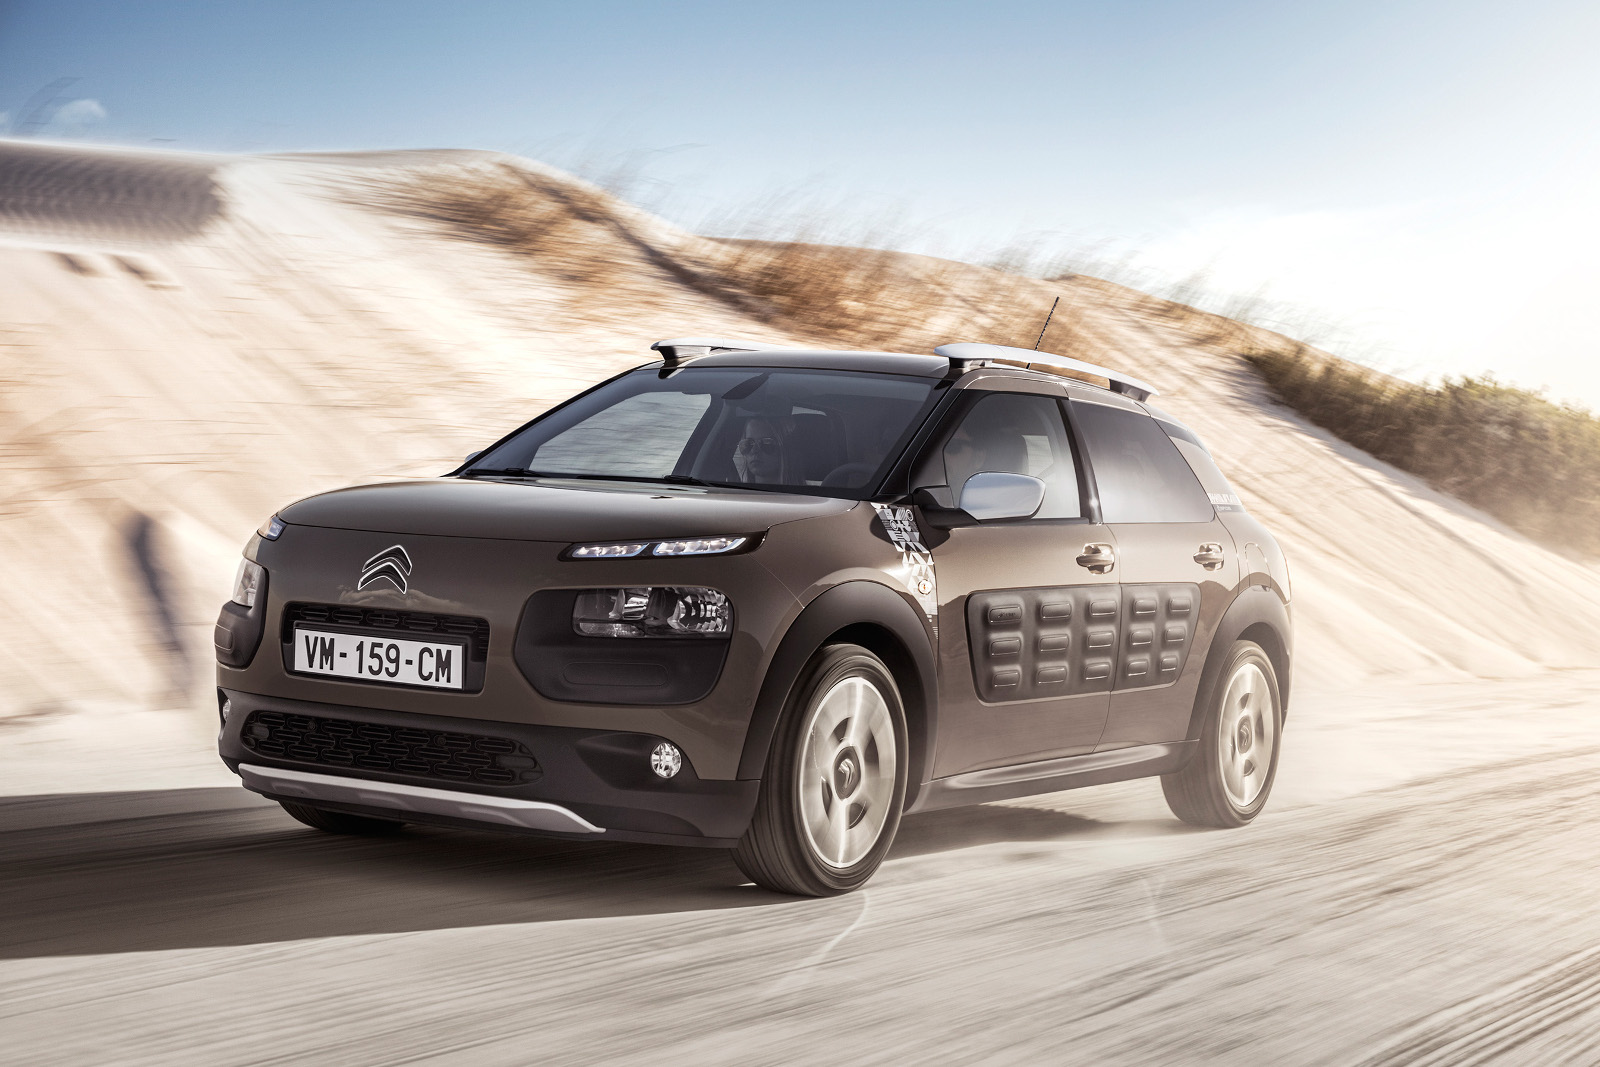 Photo of Citroen C4 Cactus Rip Curl Edition Cenevre için hazır